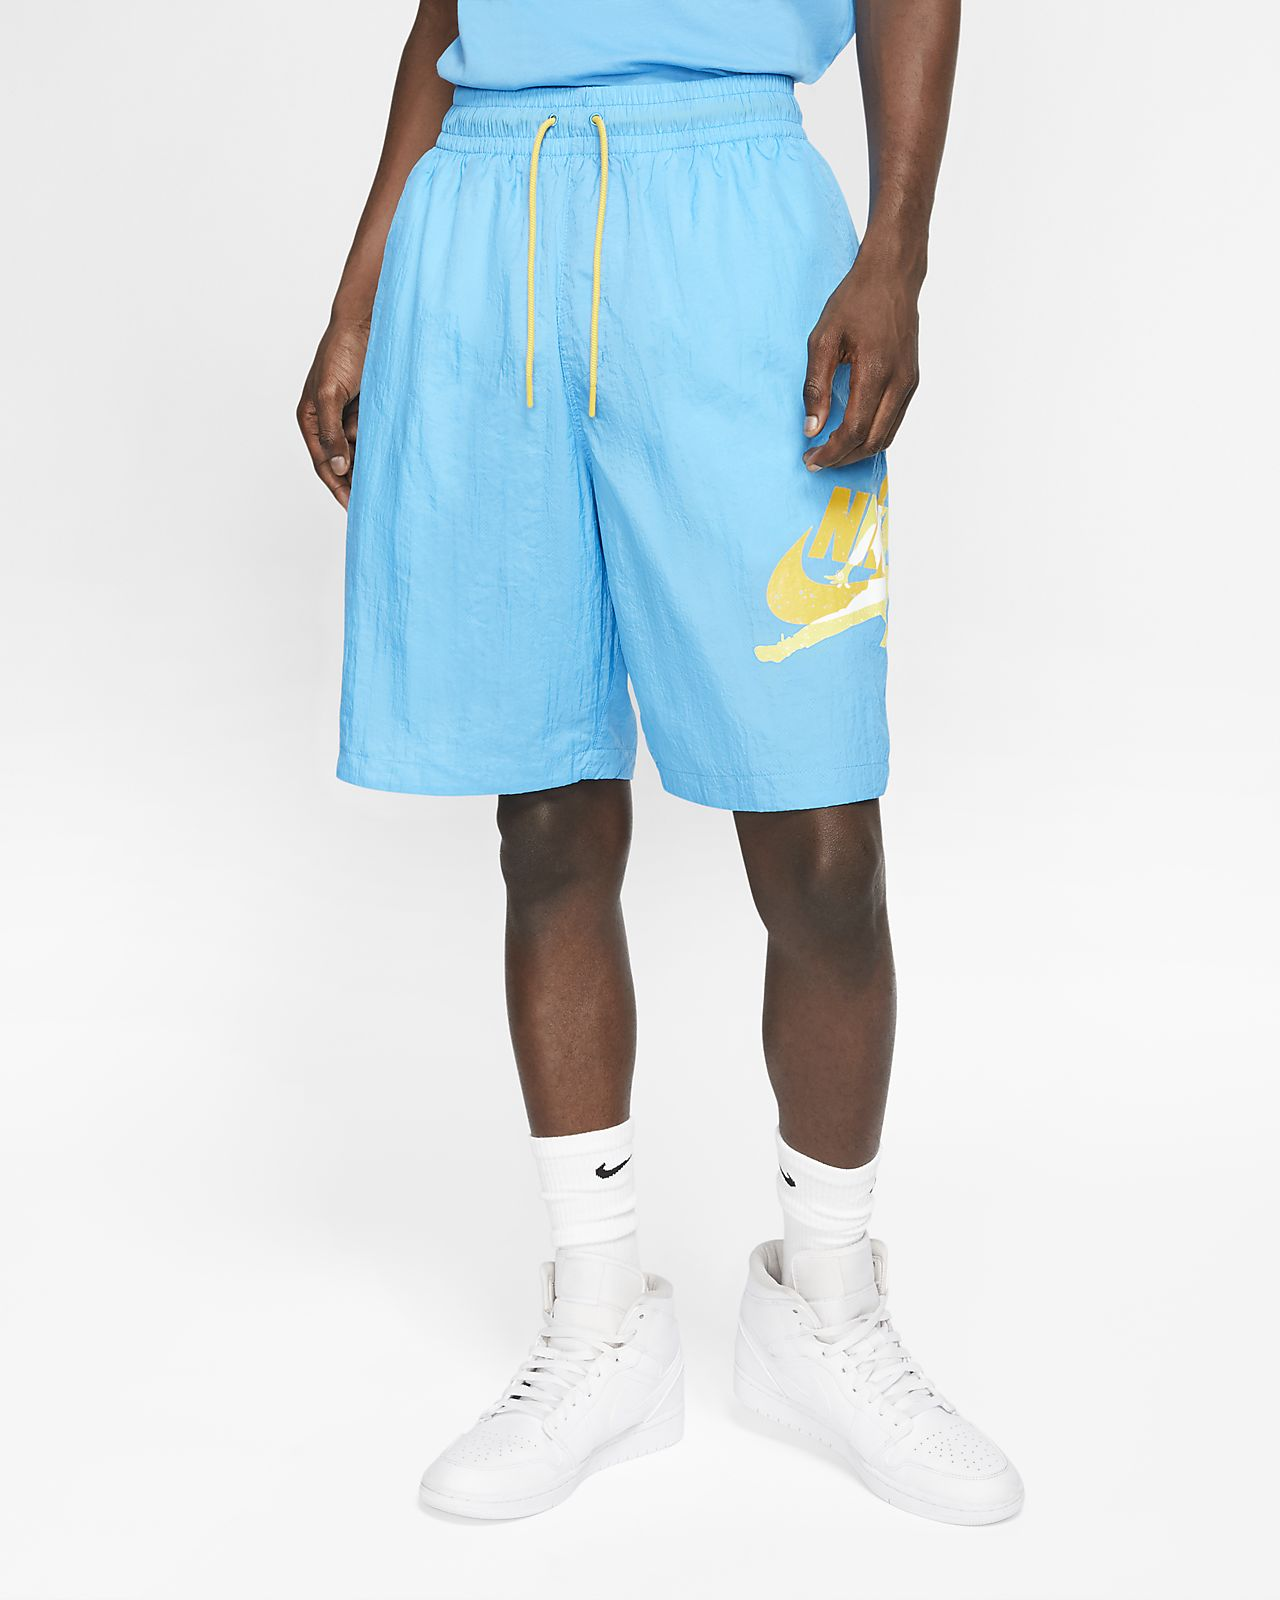 Jordan Jumpman Classics Men's Poolside Shorts